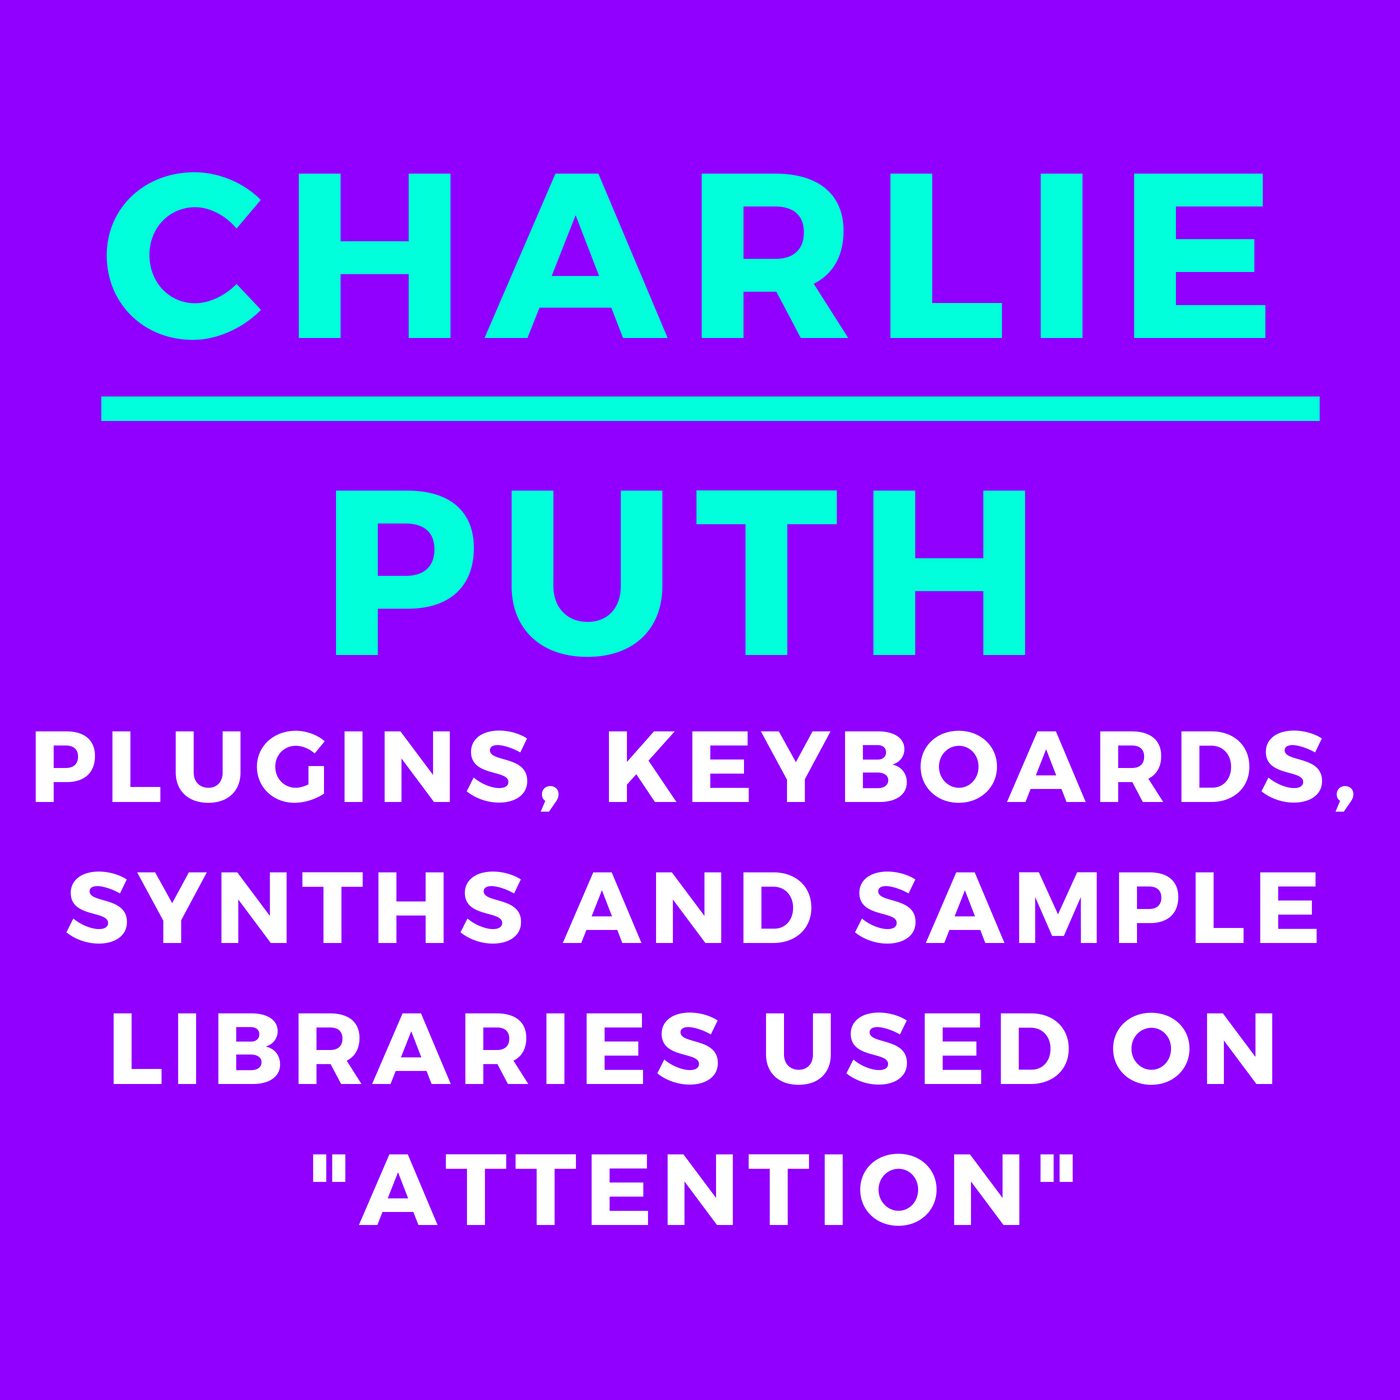 Charlie Puth Studio Plugins Keyboards Synth.png